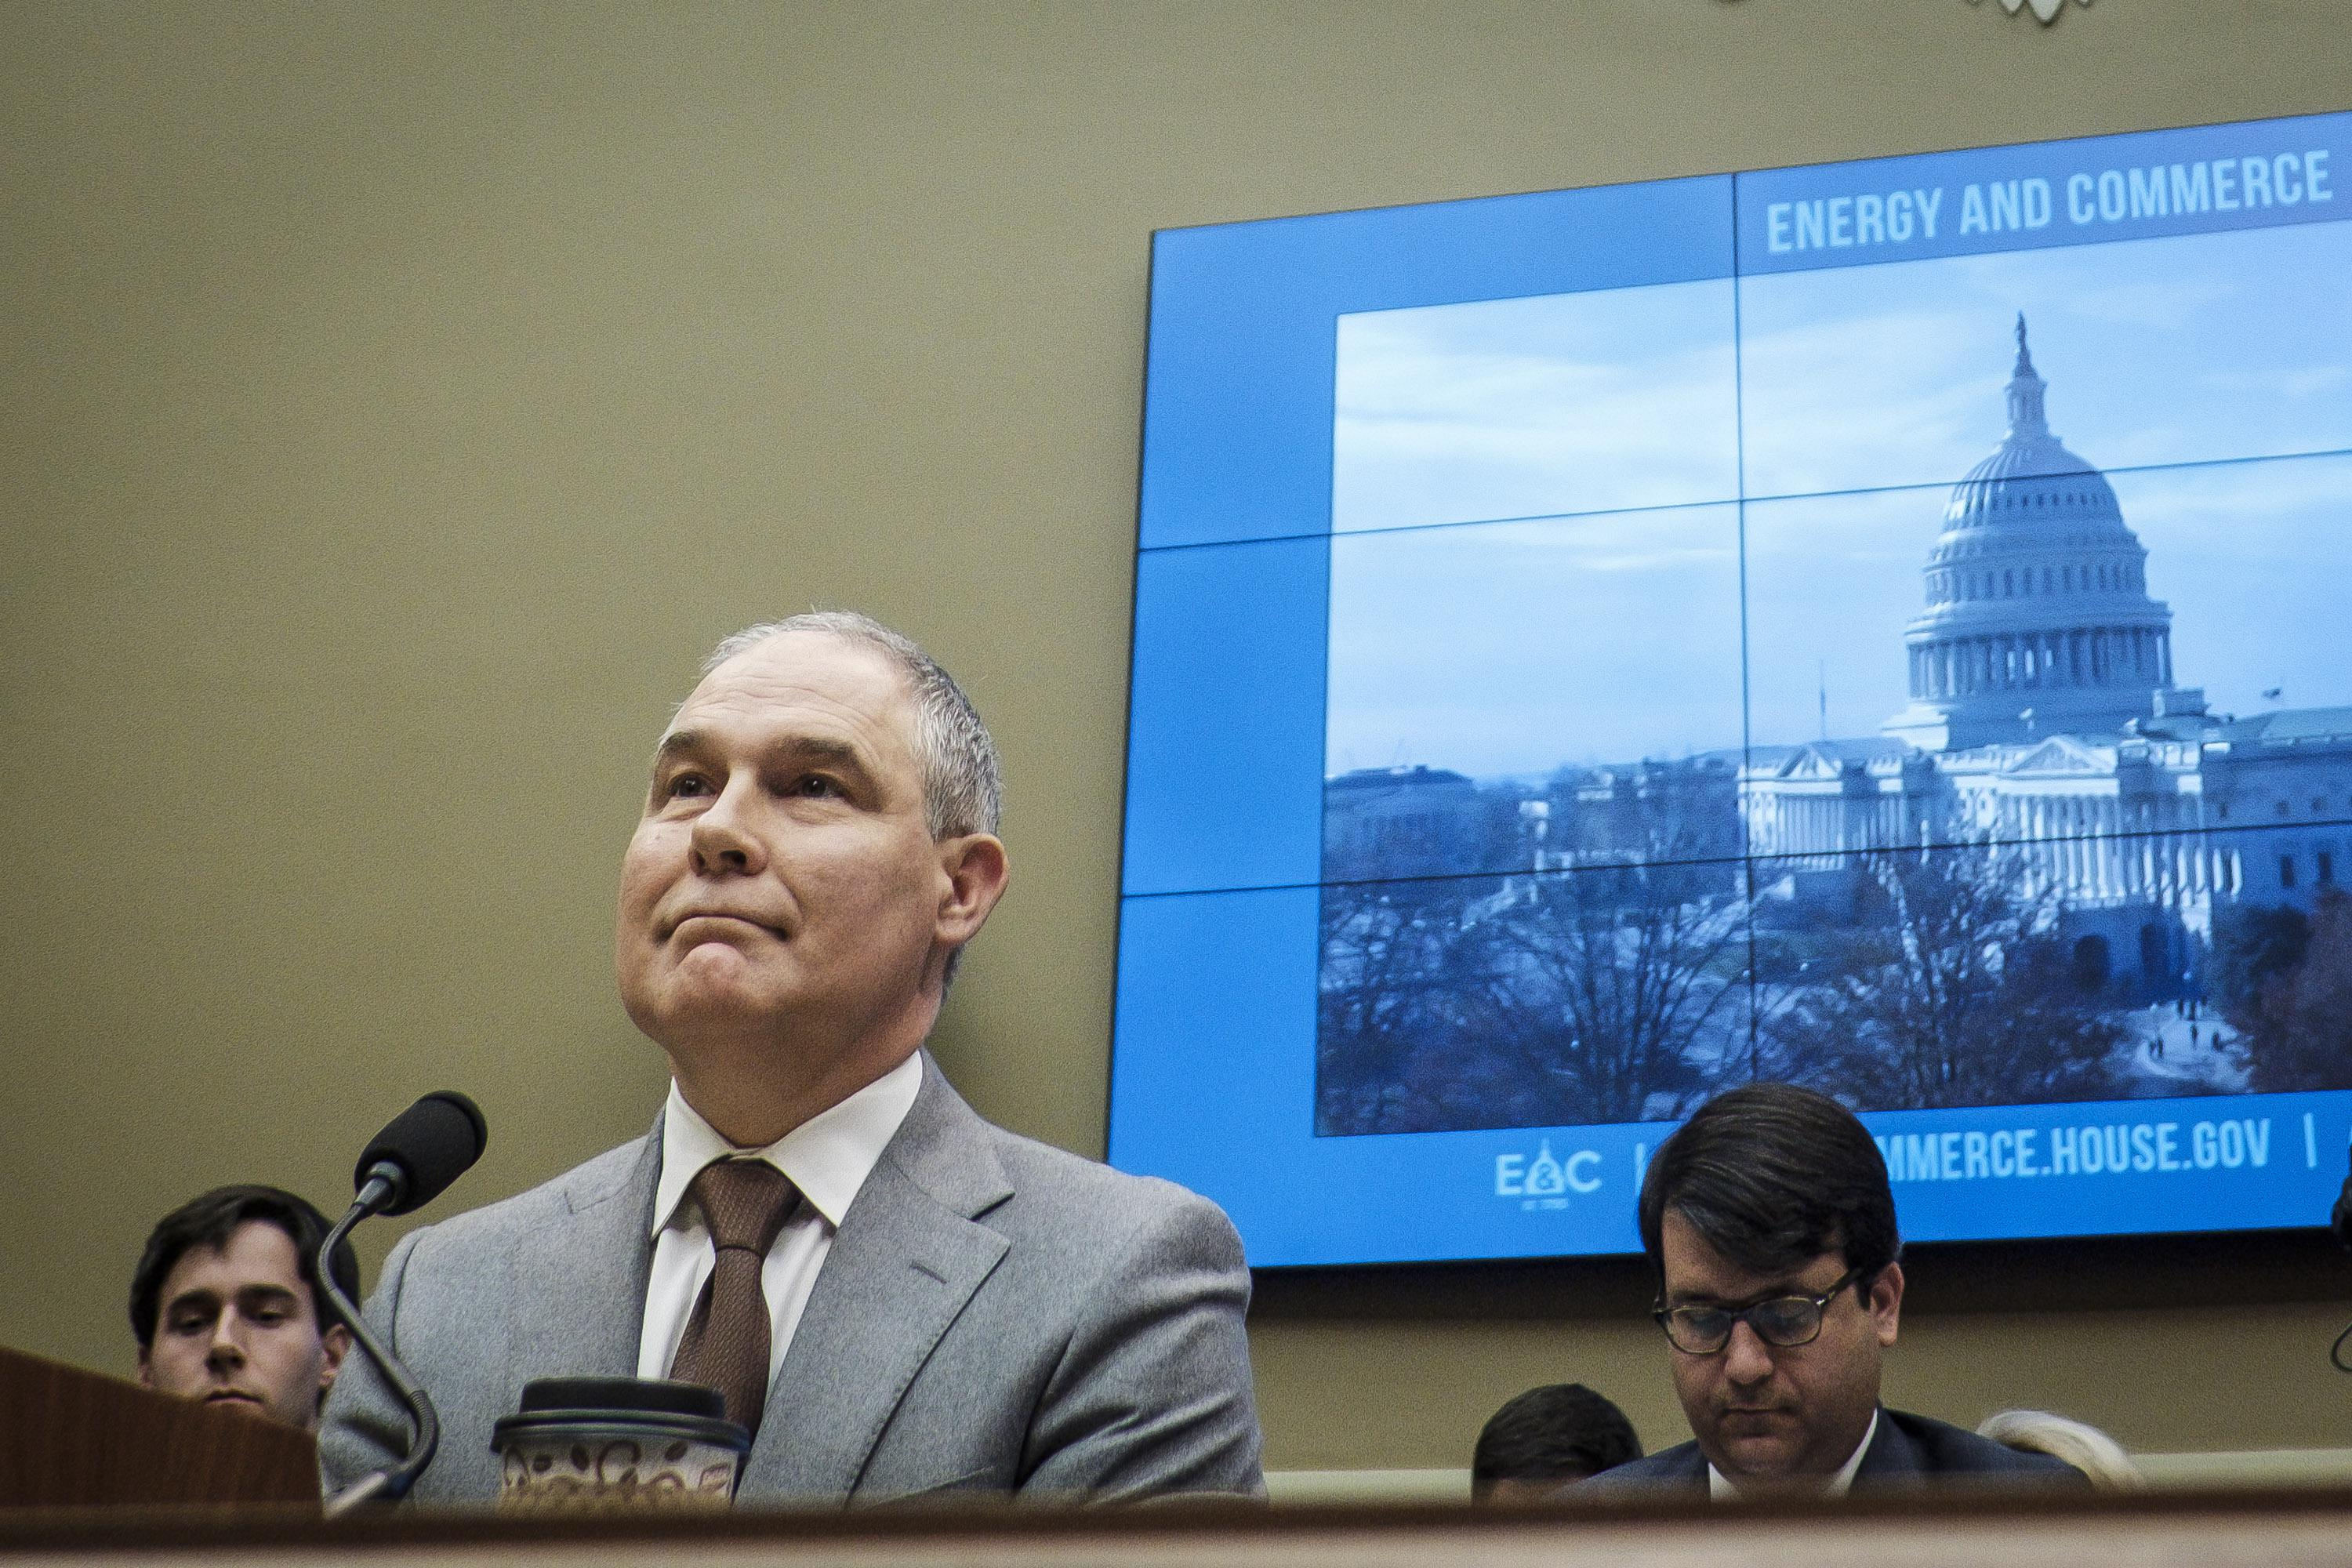 WASHINGTON, DC - DECEMBER 7:  Environmental Protection Agency Administrator Scott Pruitt testifies before the House Energy and Commerce Committee about the mission of the U.S. Environmental Protection Agency on December 7, 2017 in Washington, DC.  (Photo by Pete Marovich/Getty Images)